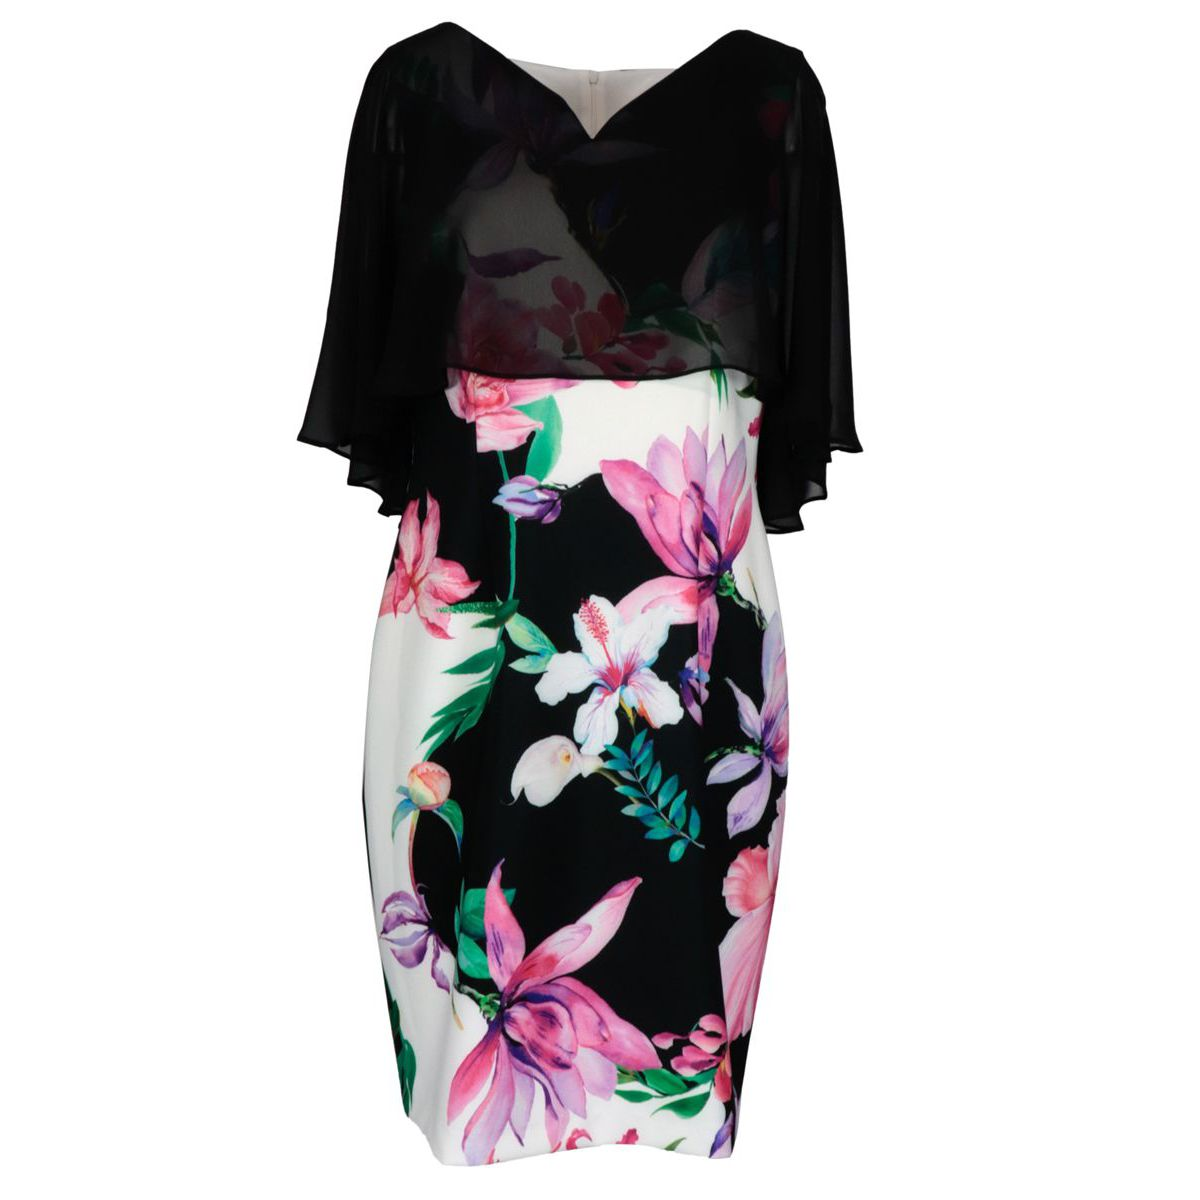 Patterned stretch polyester dress Black / fuchsia Joseph Ribkoff